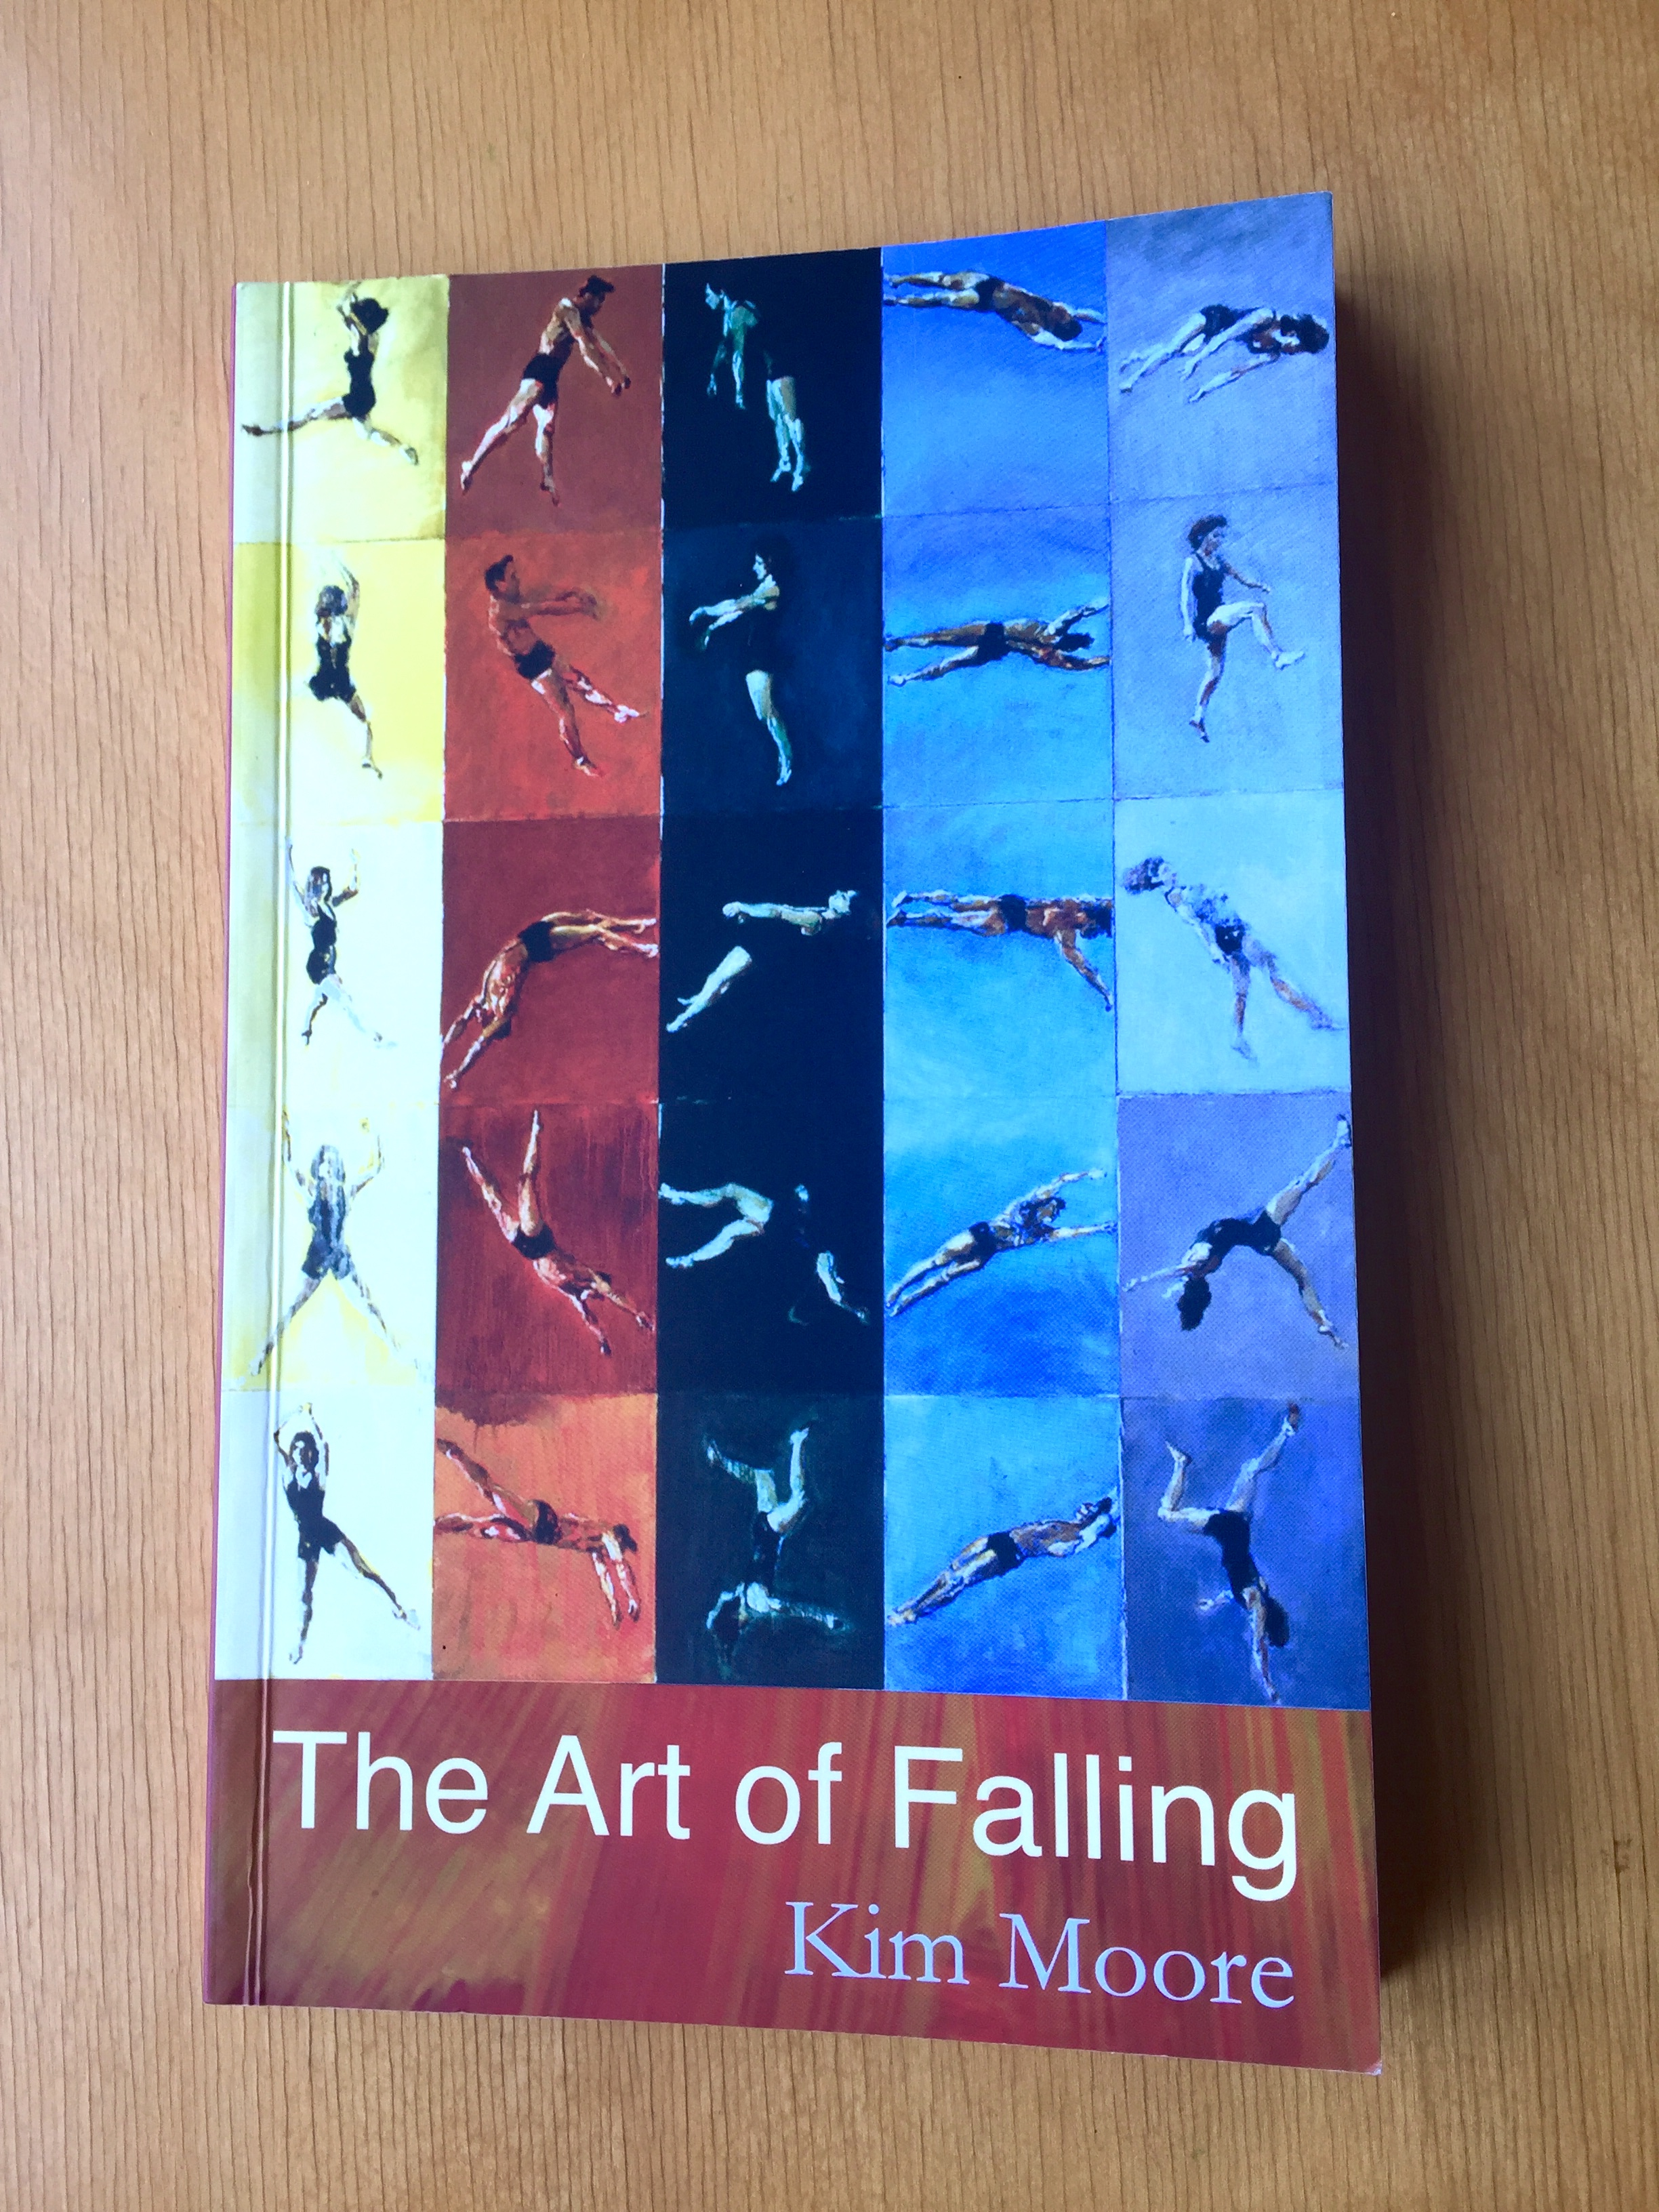 'The Art of Falling' by Kim Moore